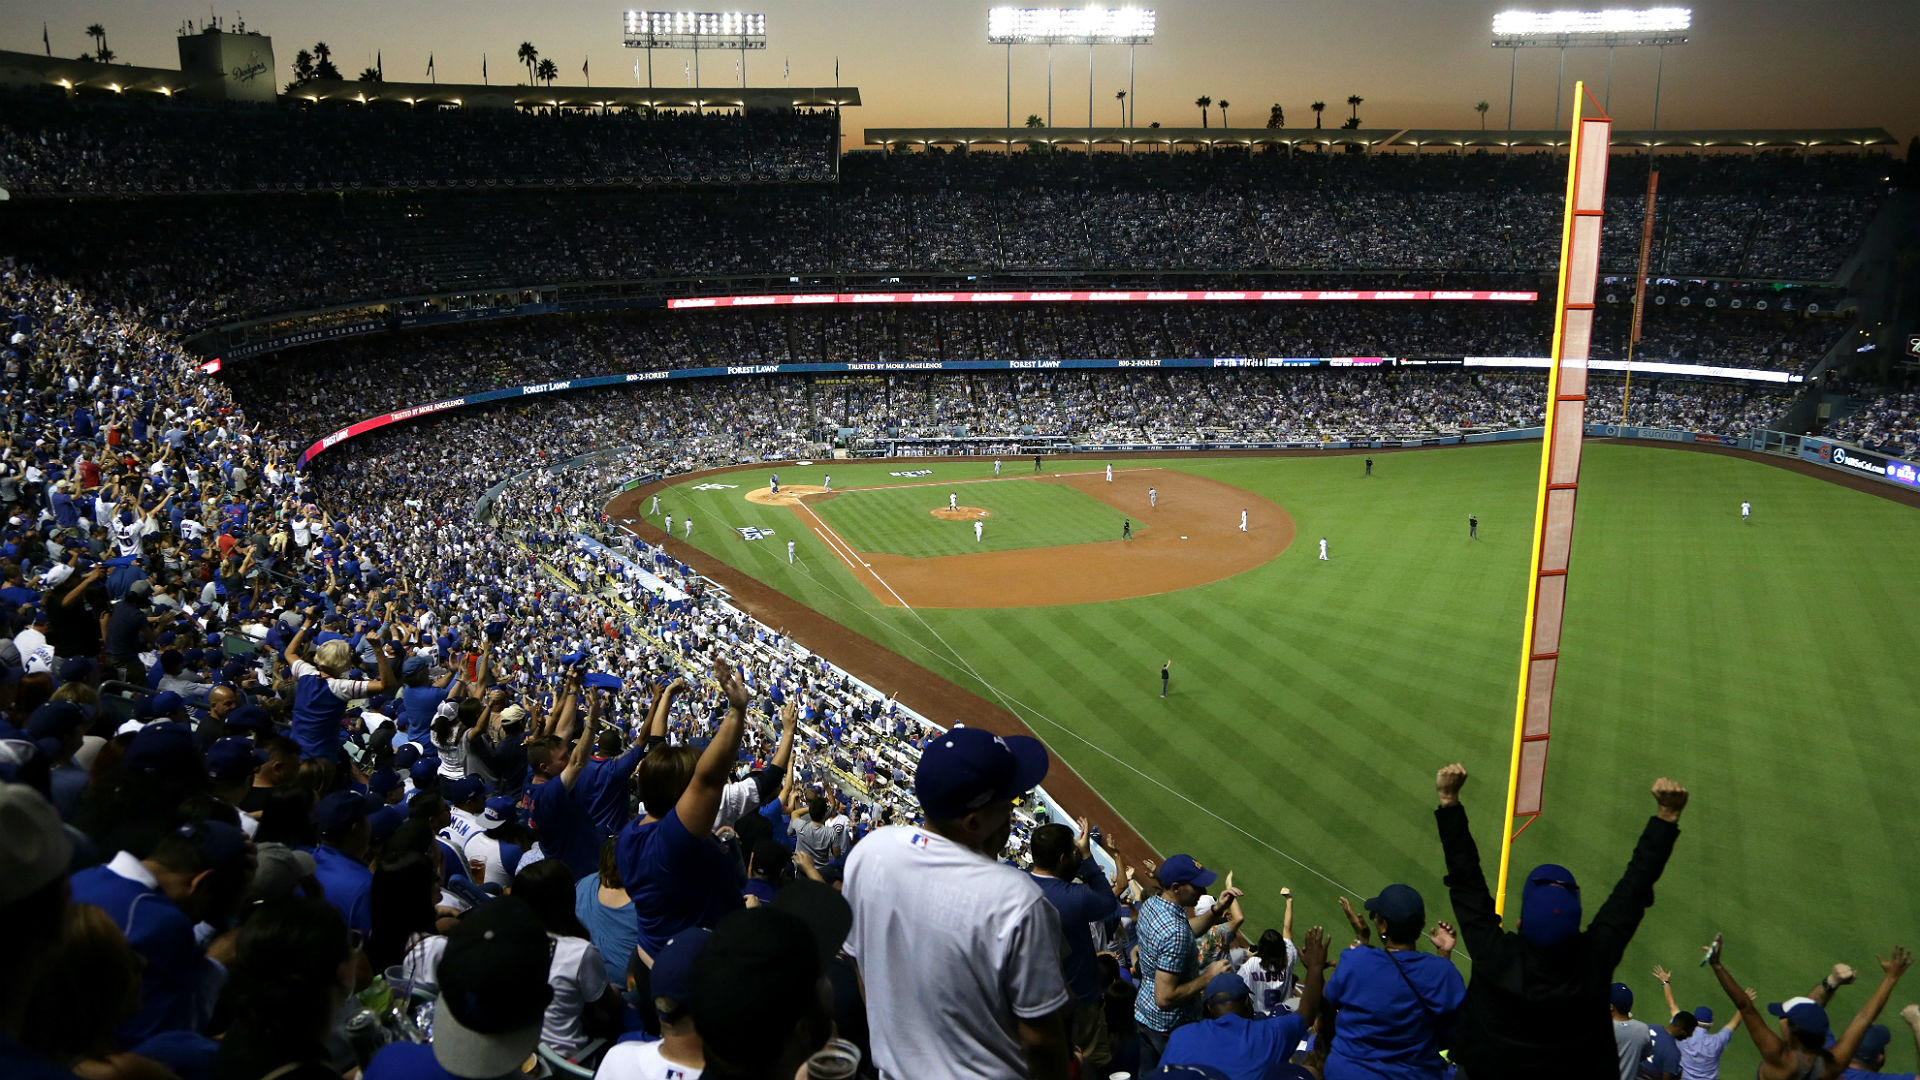 Dodgers Seeking $12M Per Year For Stadium Naming Rights